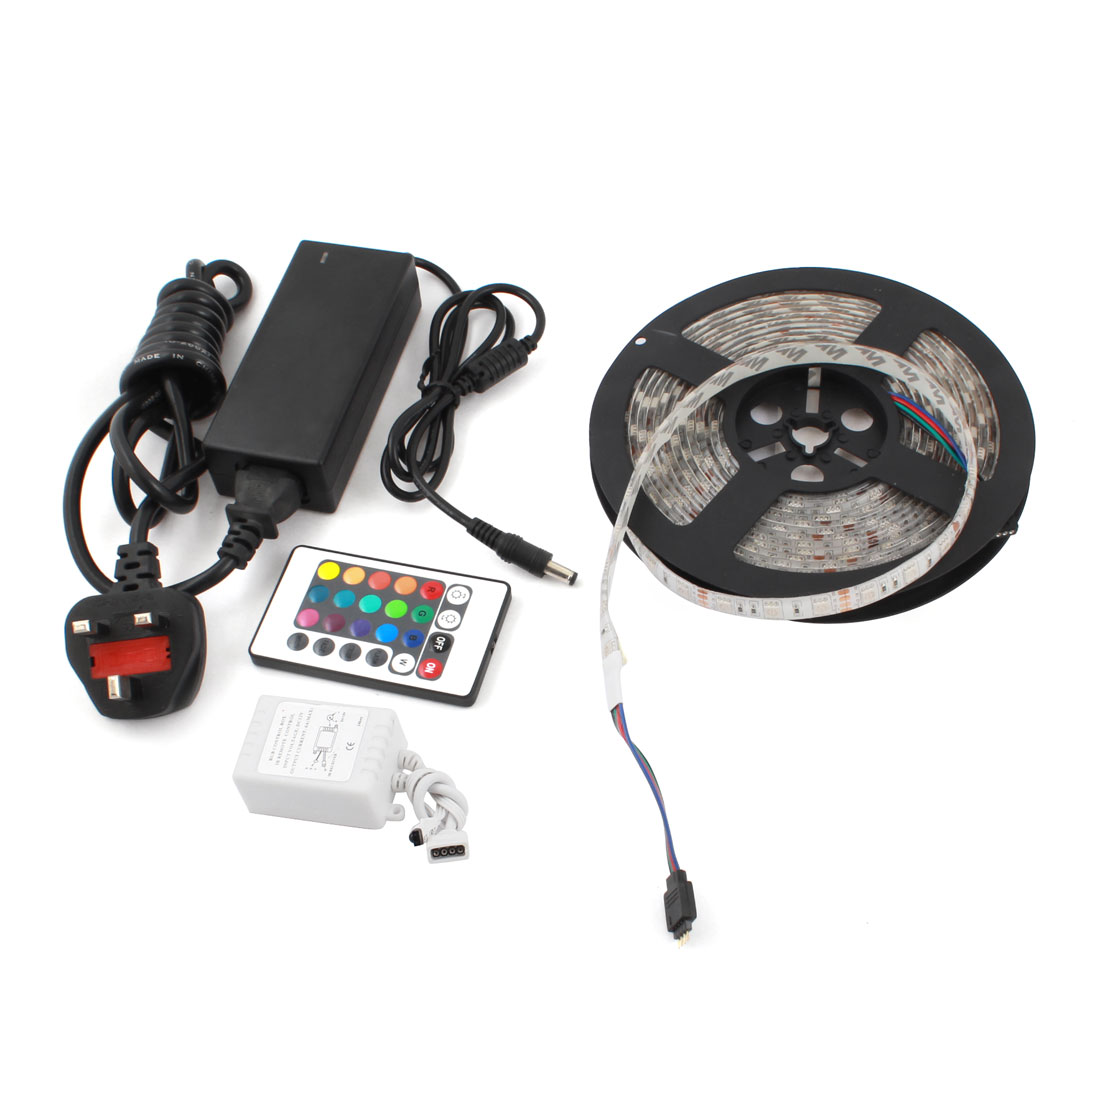 Car Auto AC/DC UK Plug Power Adapter 5050 300 LED Strip Light 5M + 24 Key RGB Controller